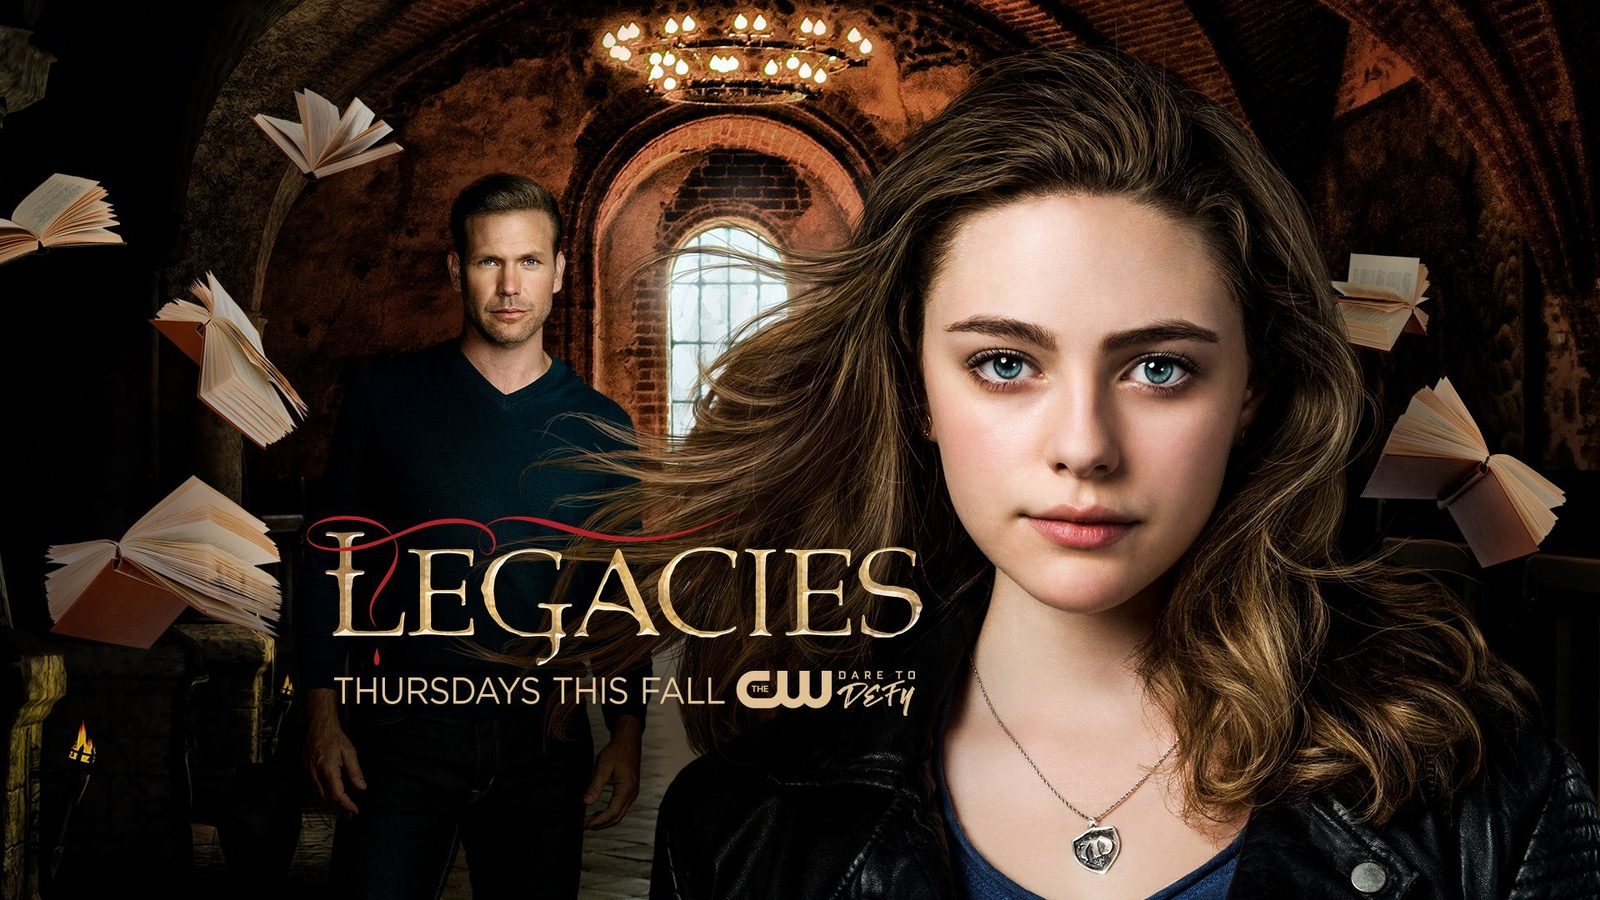 Наследие/Legacies background